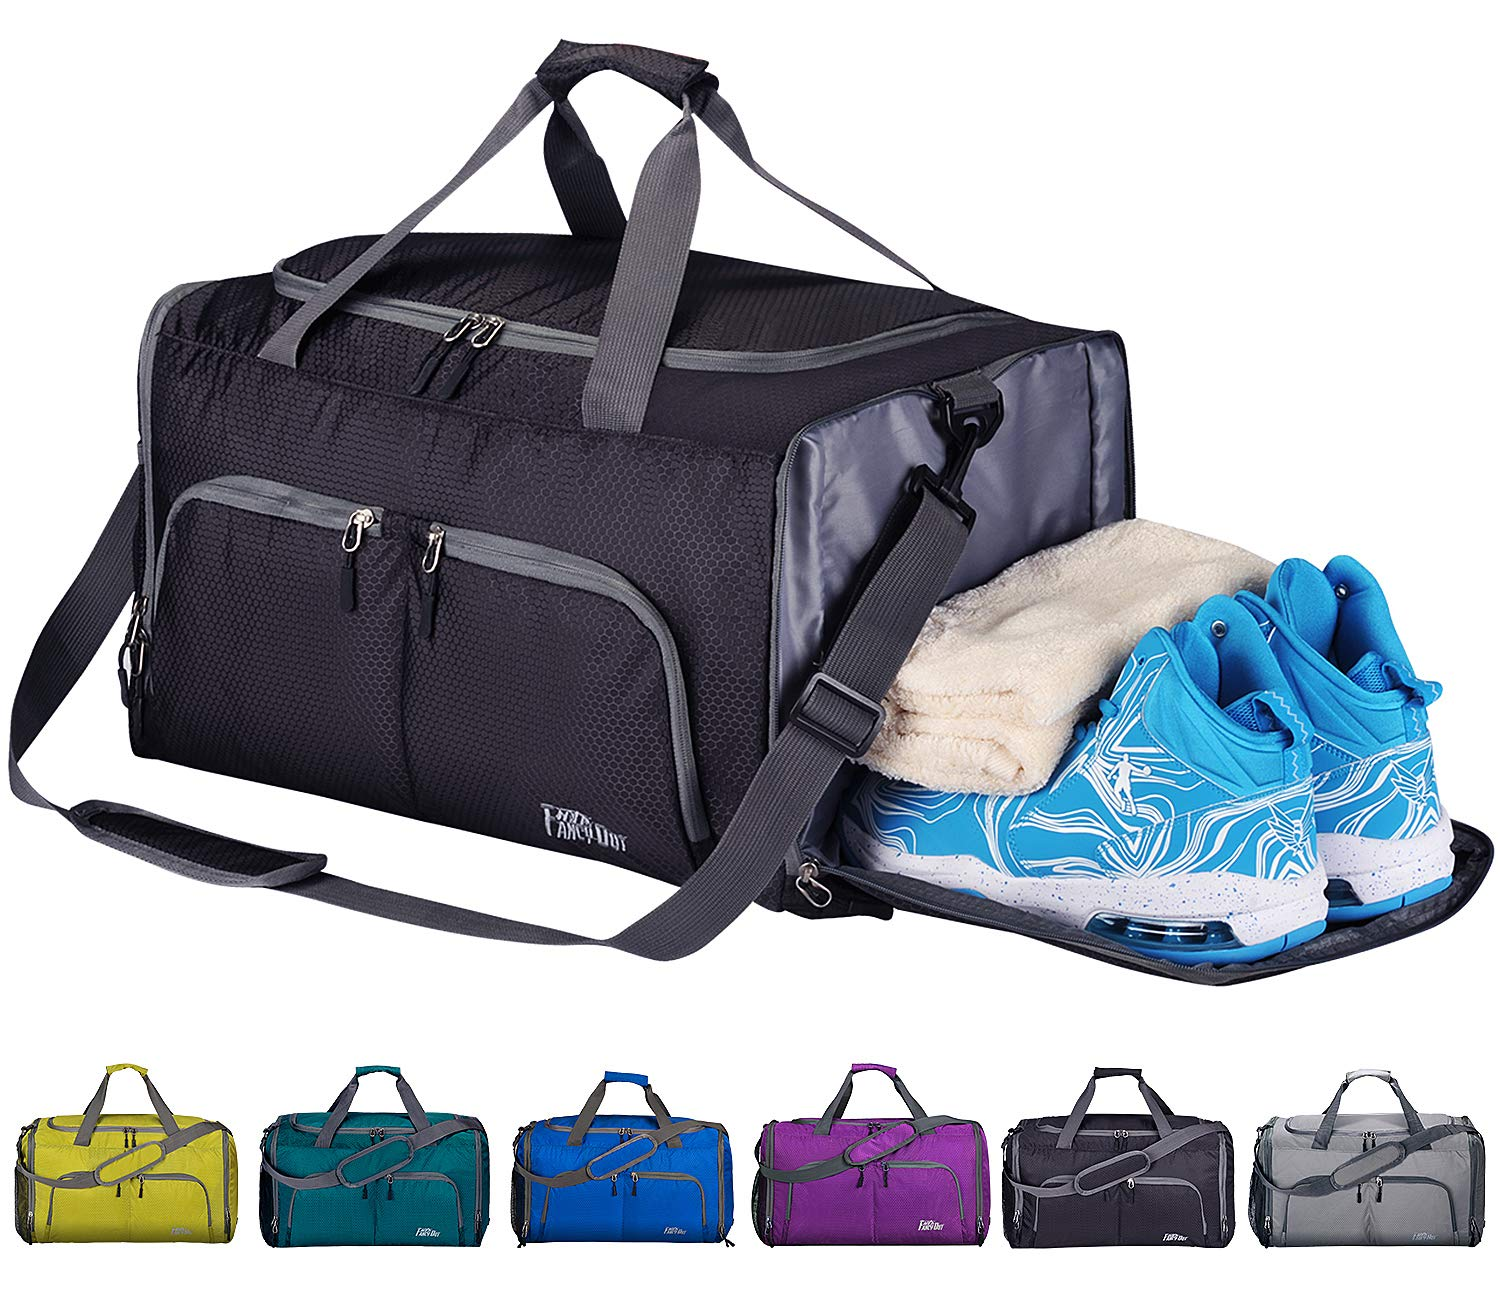 8c41a81d87 CoCoMall Foldable Sports Gym Bag with Shoes Compartment   Wet Pocket ...